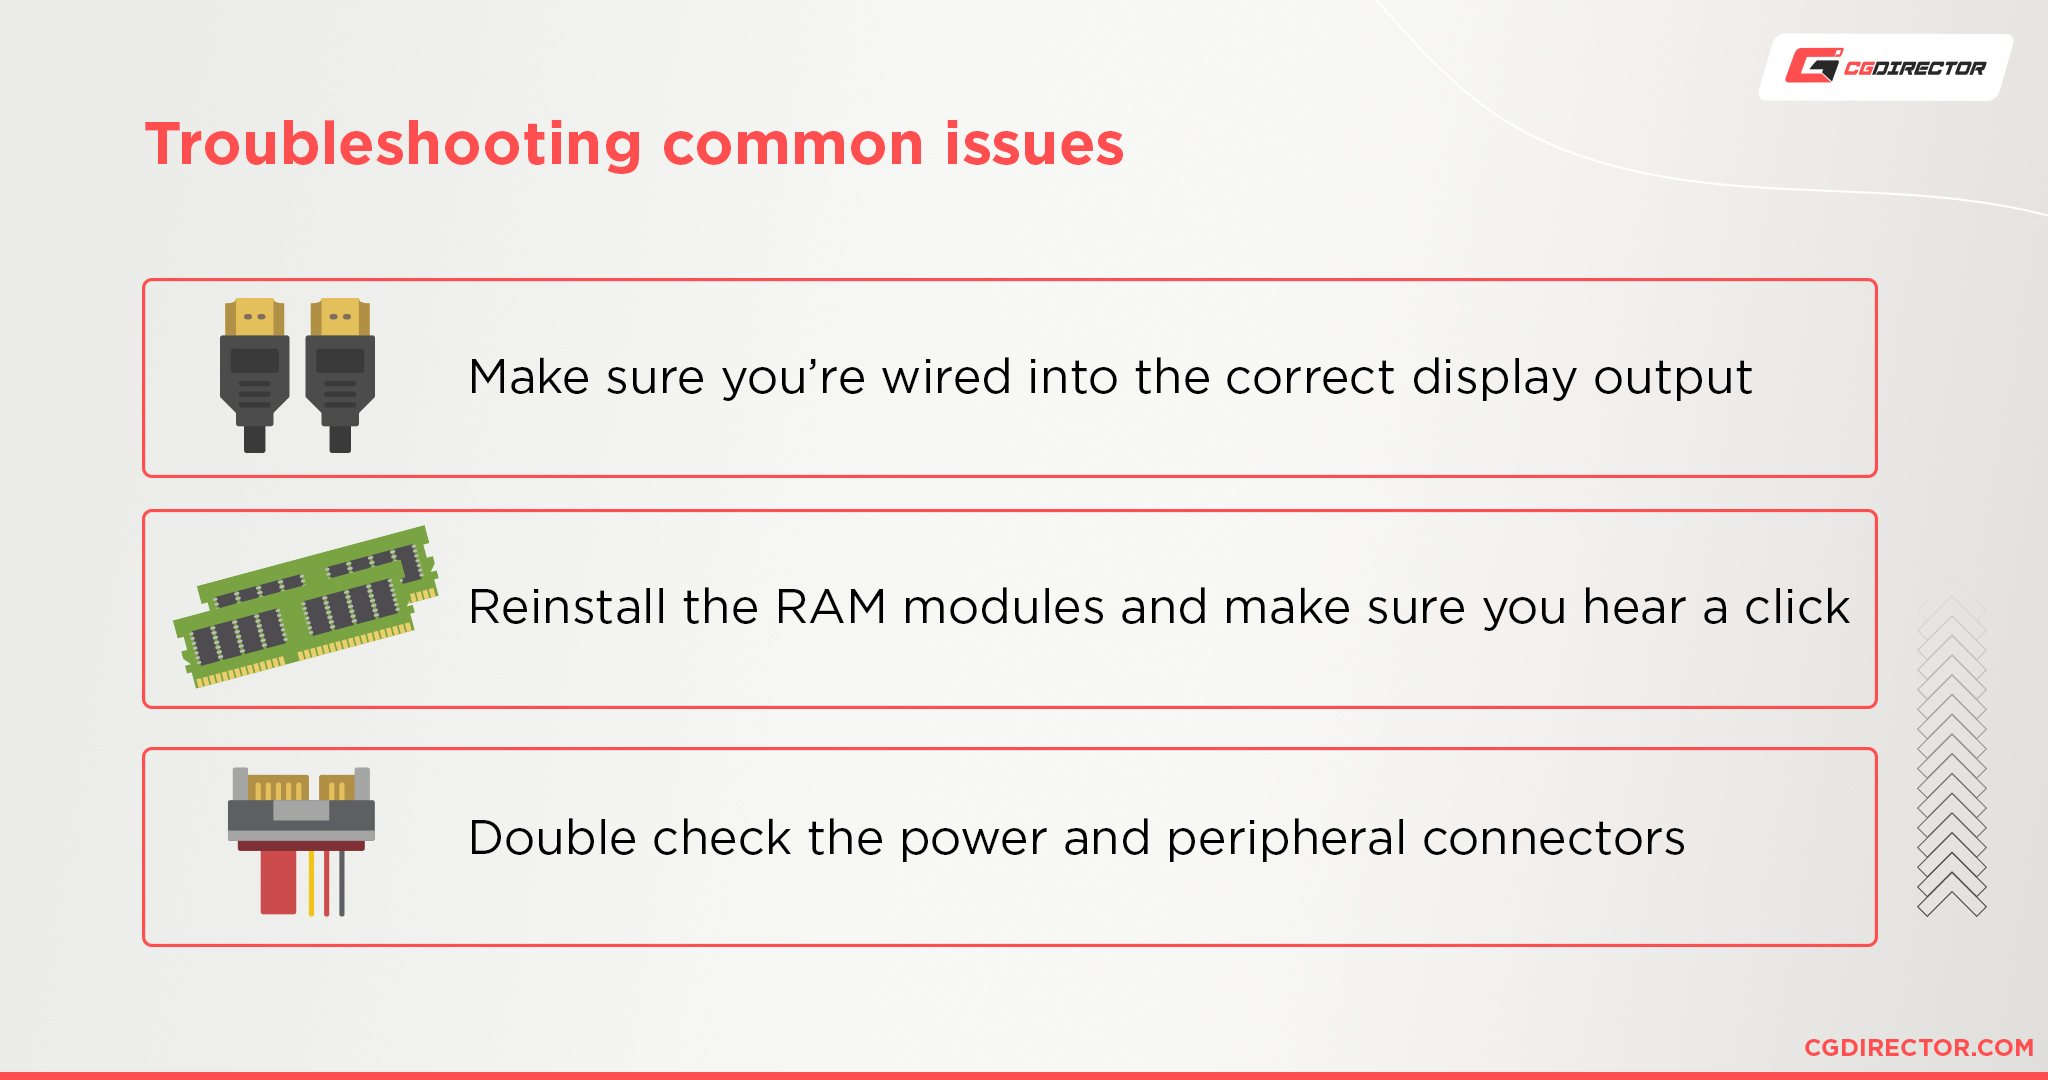 Troubleshooting common issues